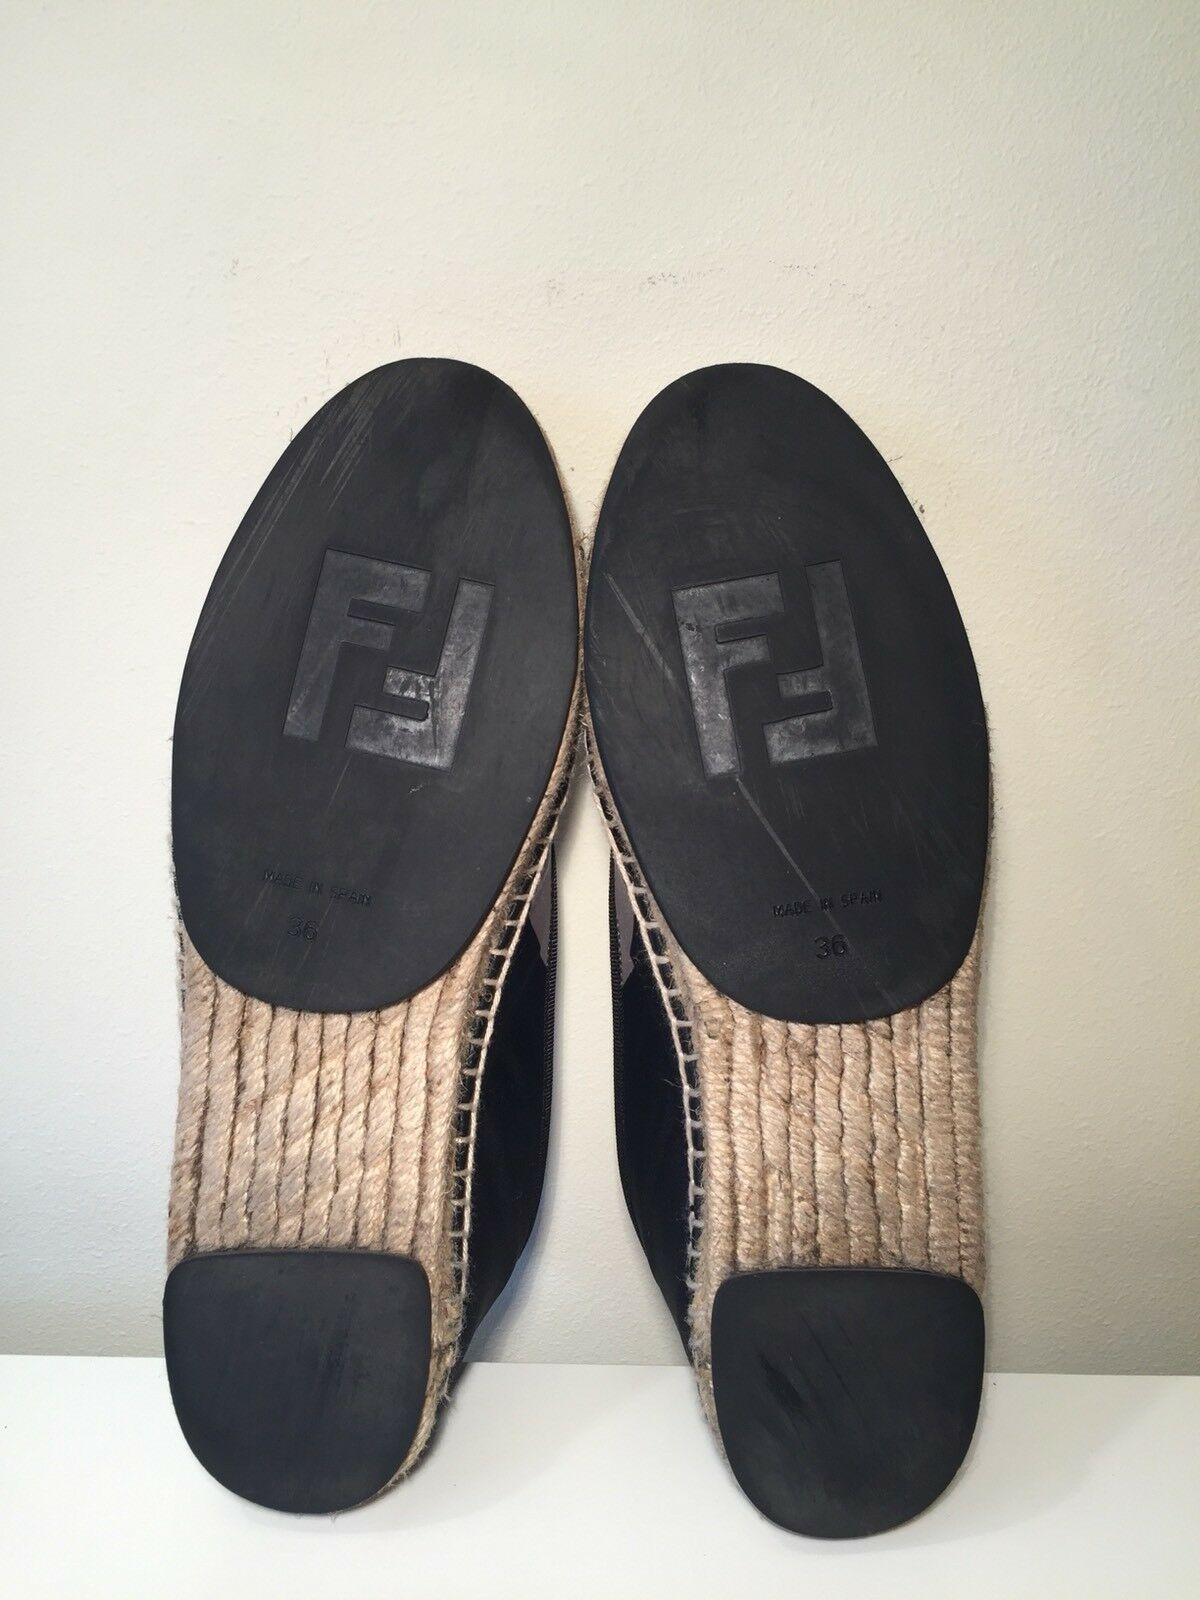 Authentic Authentic Authentic Fendi Espadrille Pour Femme Chaussures Taille 36 8ce728